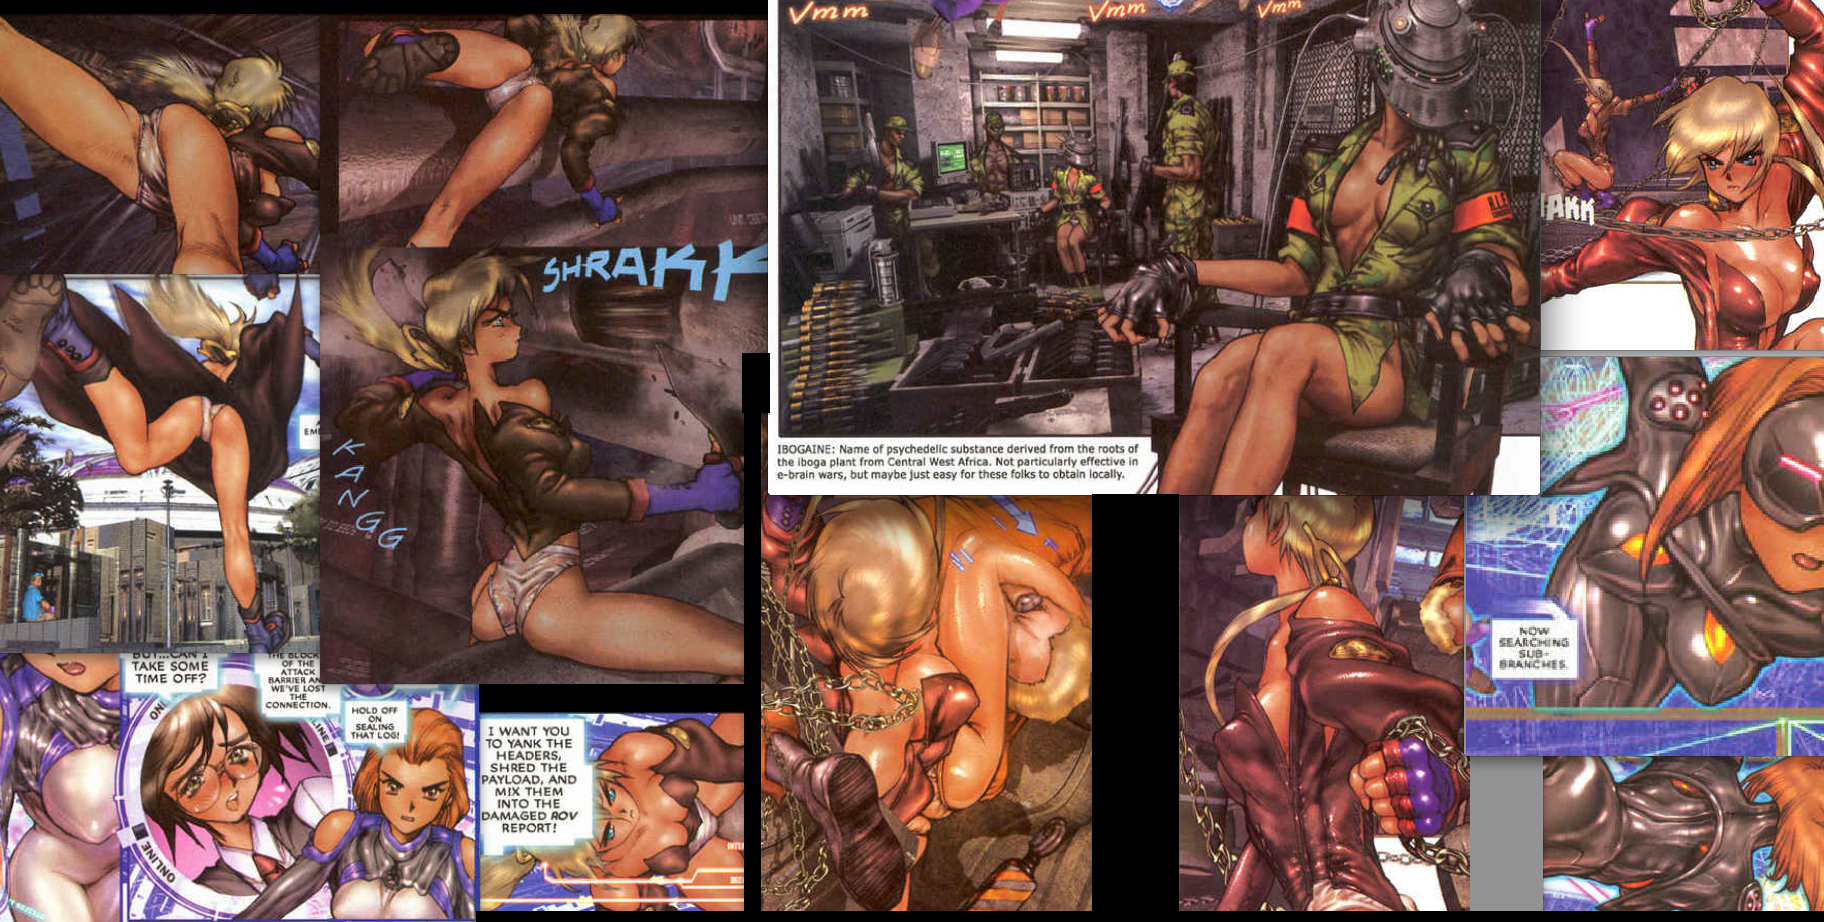 Motoko Aramaki, Ghost in the Shell 2: man/machine interface manga comic, Young Magazine, Dark Horse Comics, 1991 -- 2003